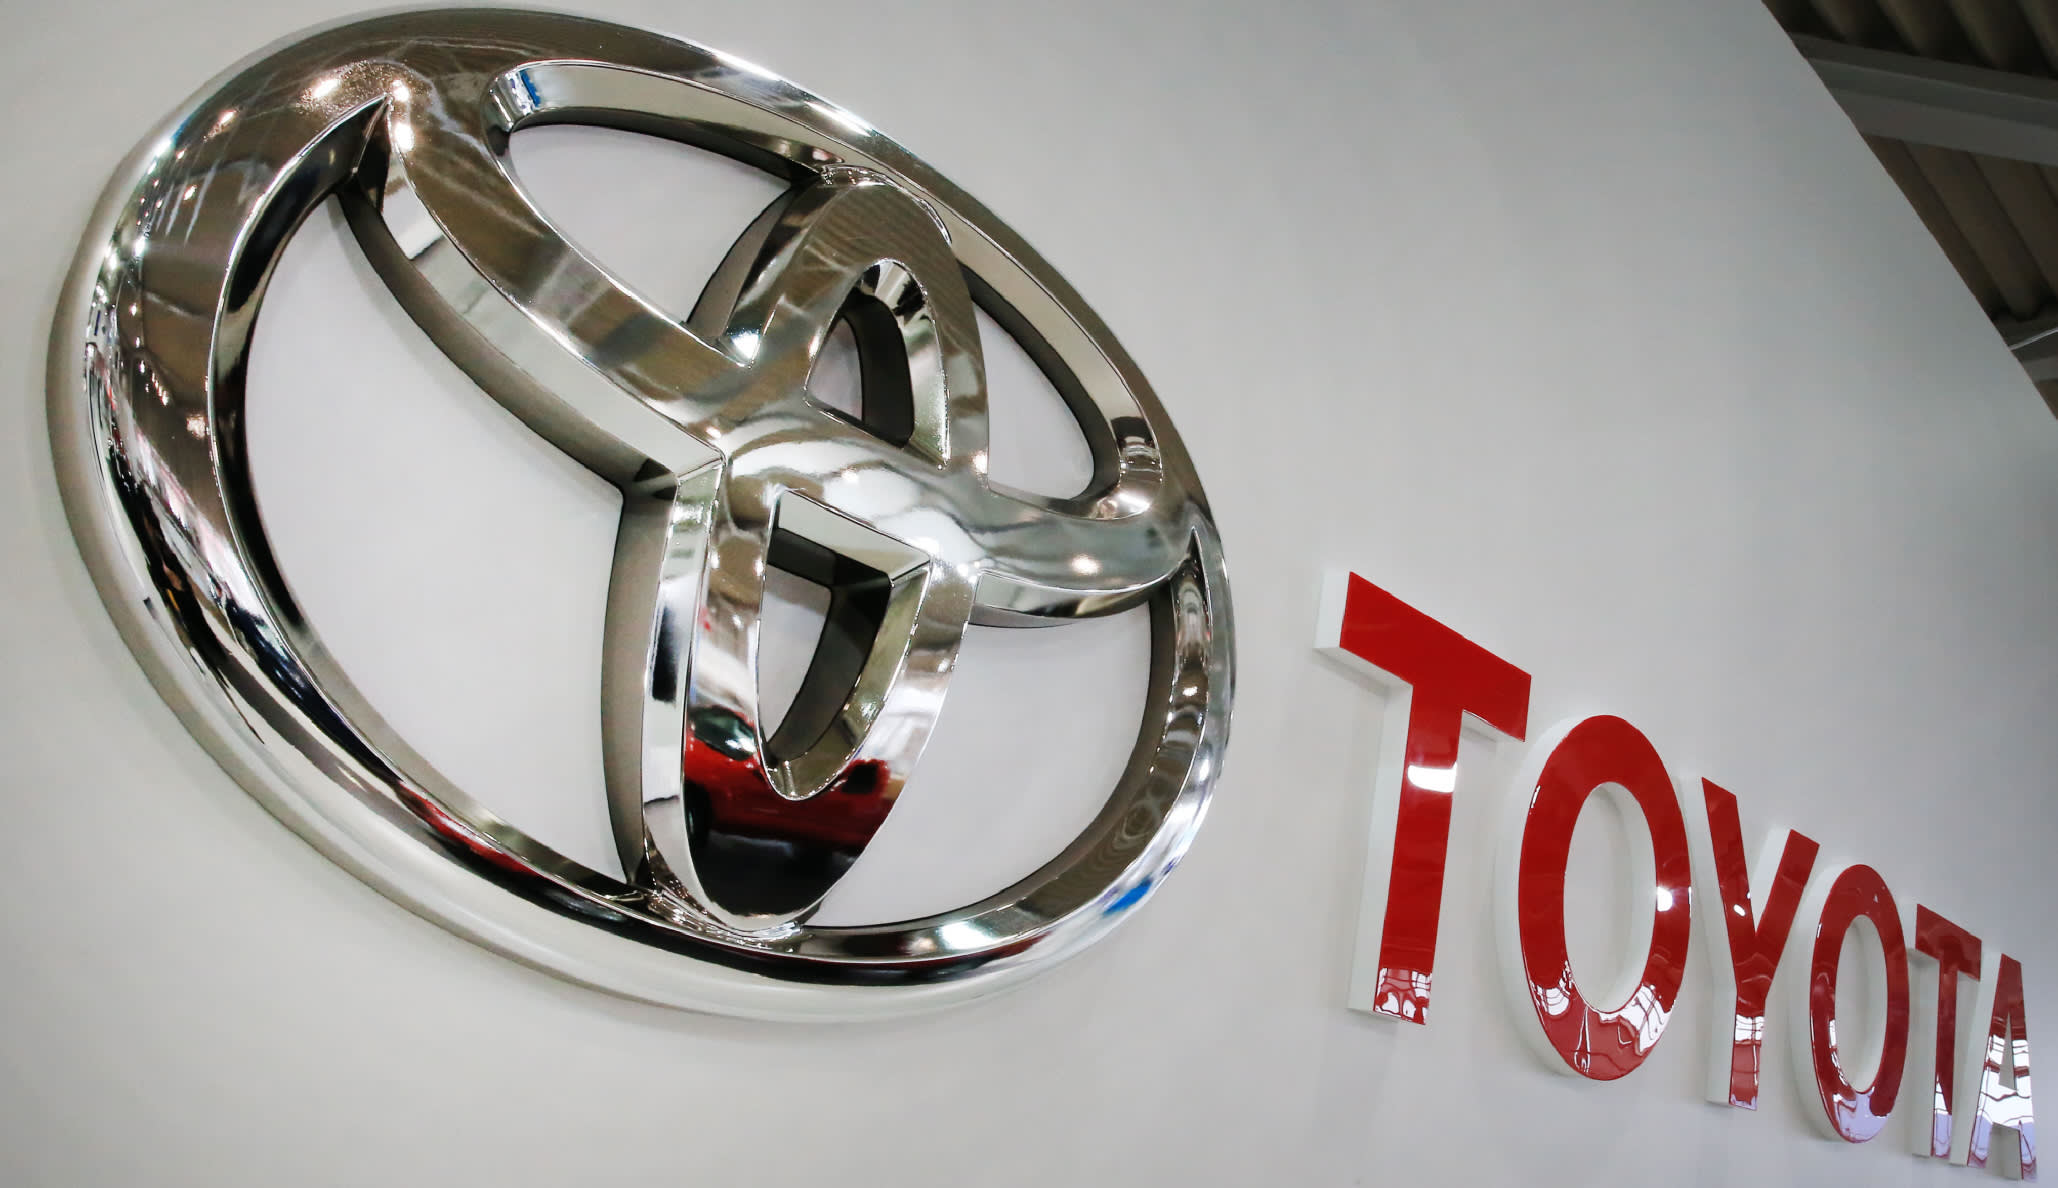 Toyota to pay overtime under expanded flexible hours program